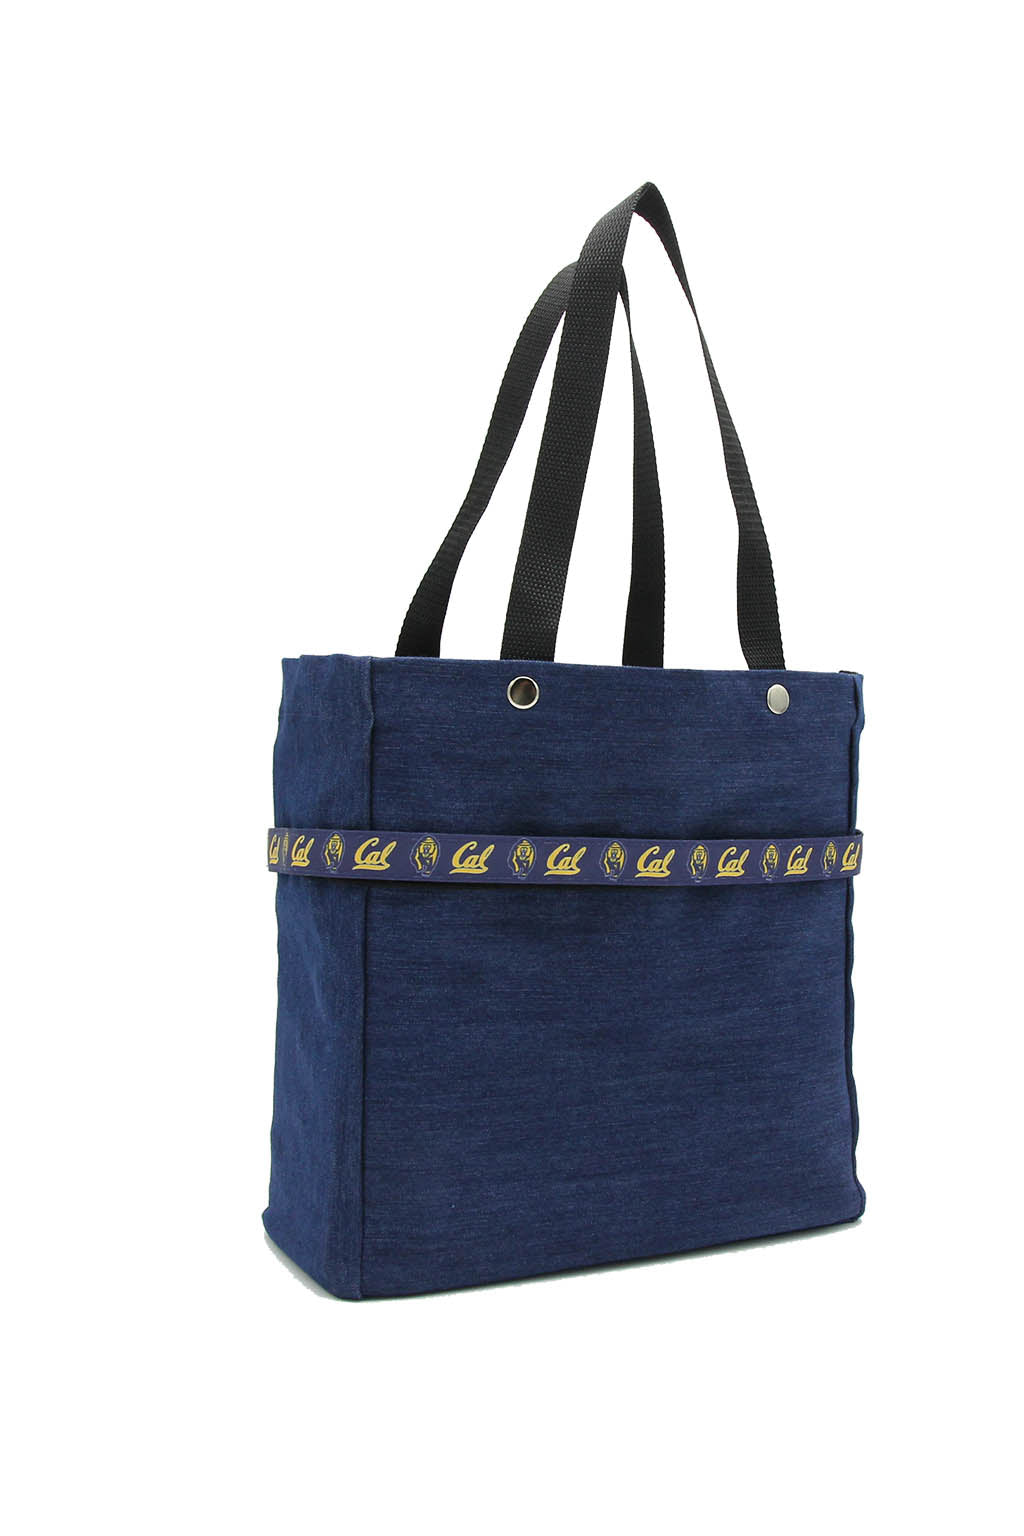 Clear stadium bag with Cal Bears sleeve